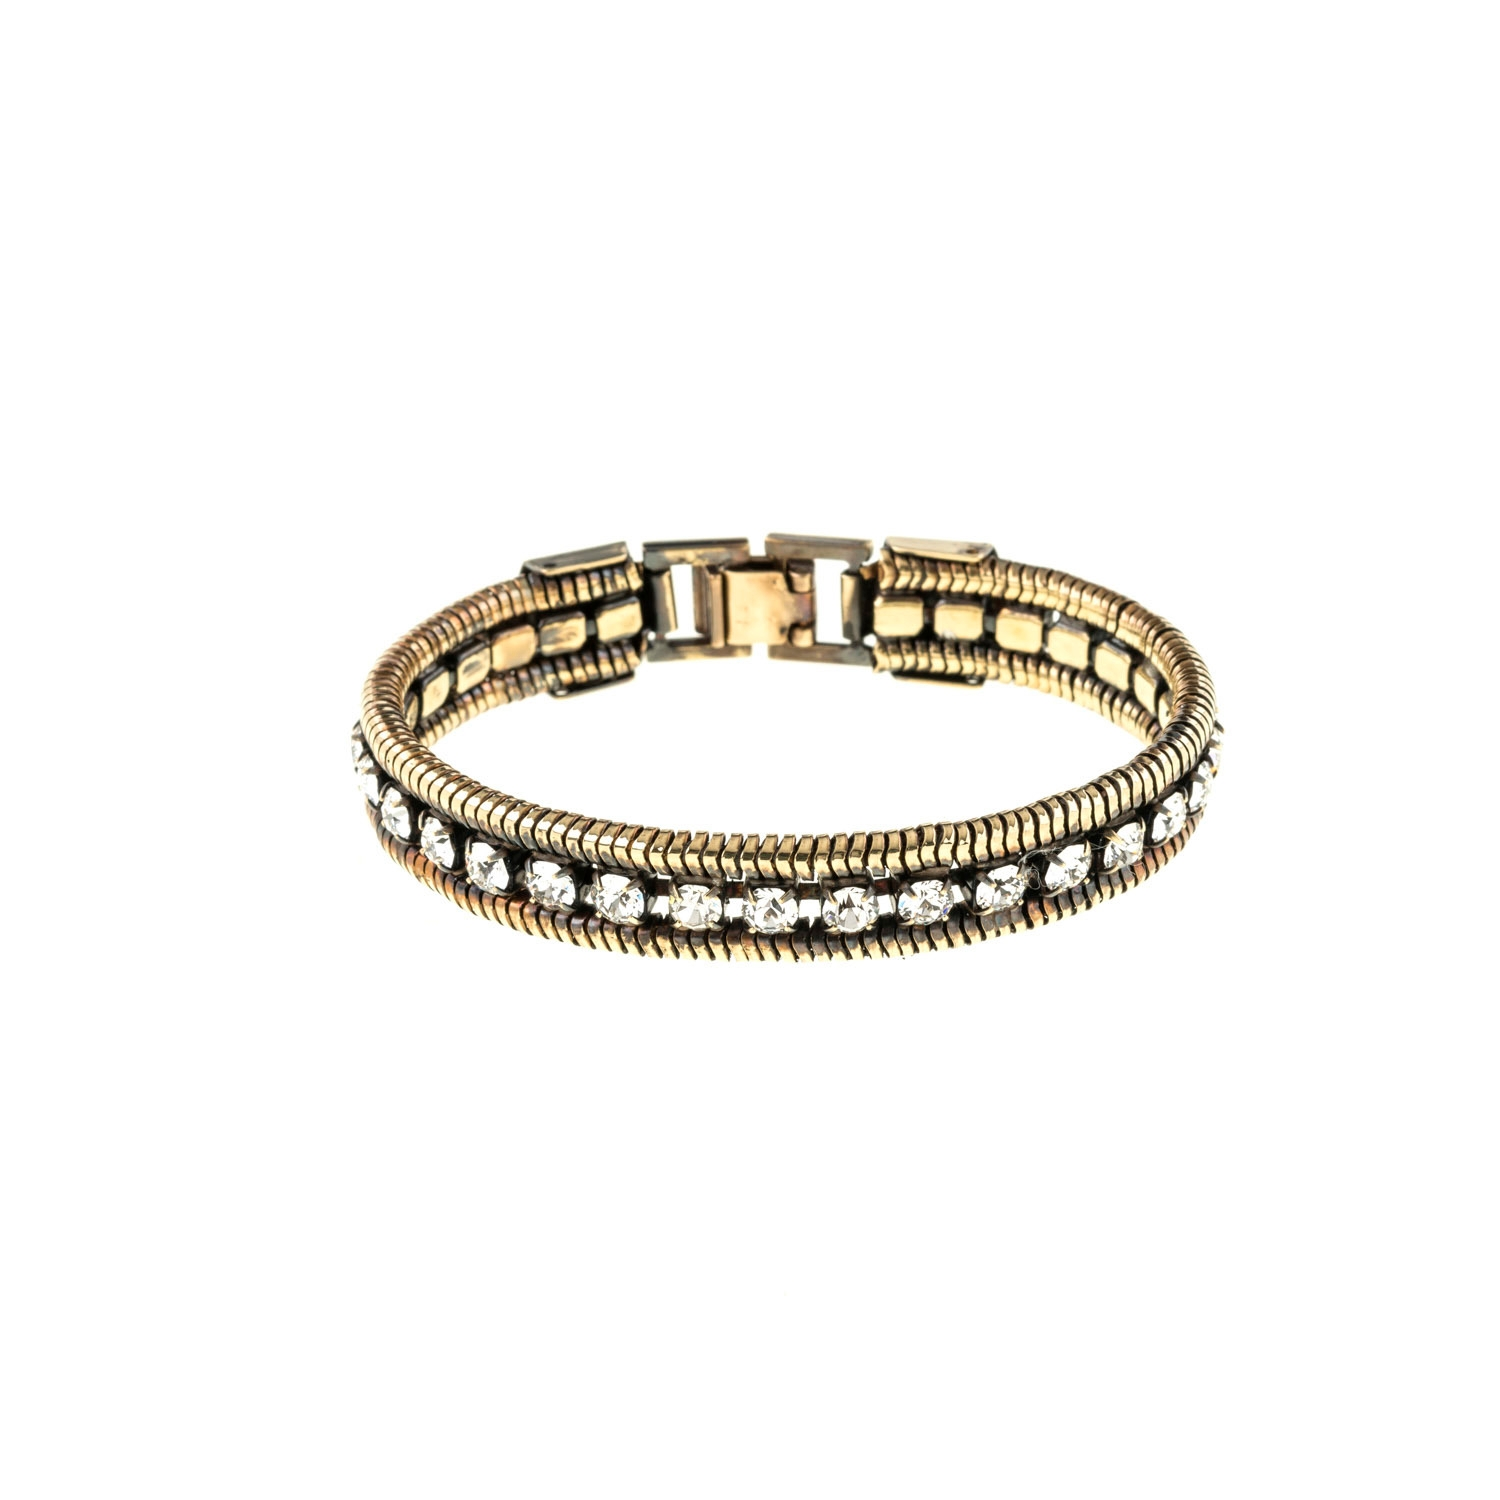 HALO & CO CRYSTAL AND ROPE CHAIN CUFF IN DARK ANTIQUE GOLD COLOUR